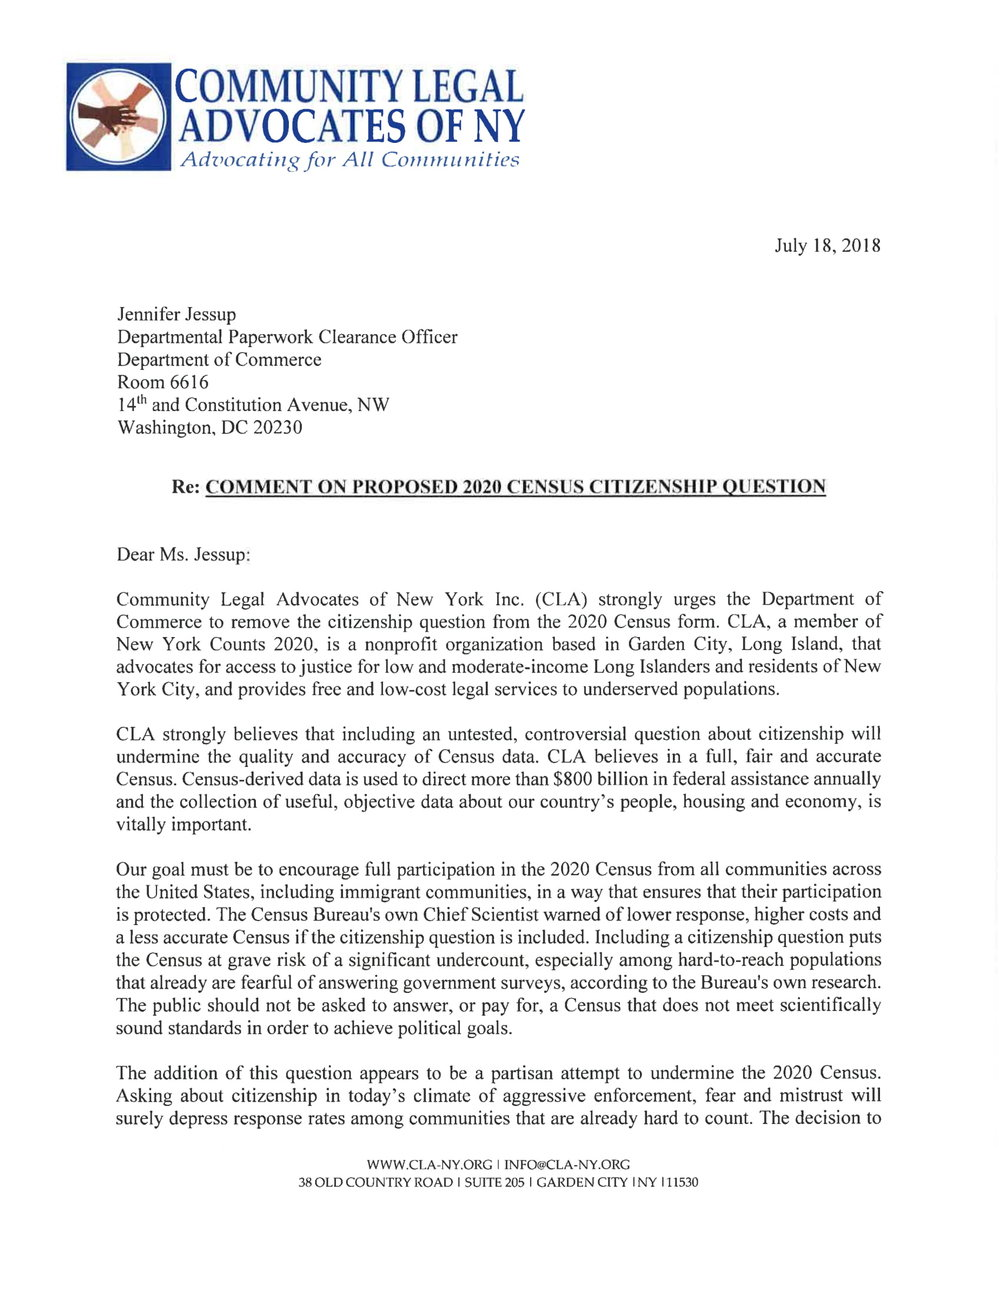 Letter to Dept of Commernce re 2020 Census 7-18-18-1.jpg